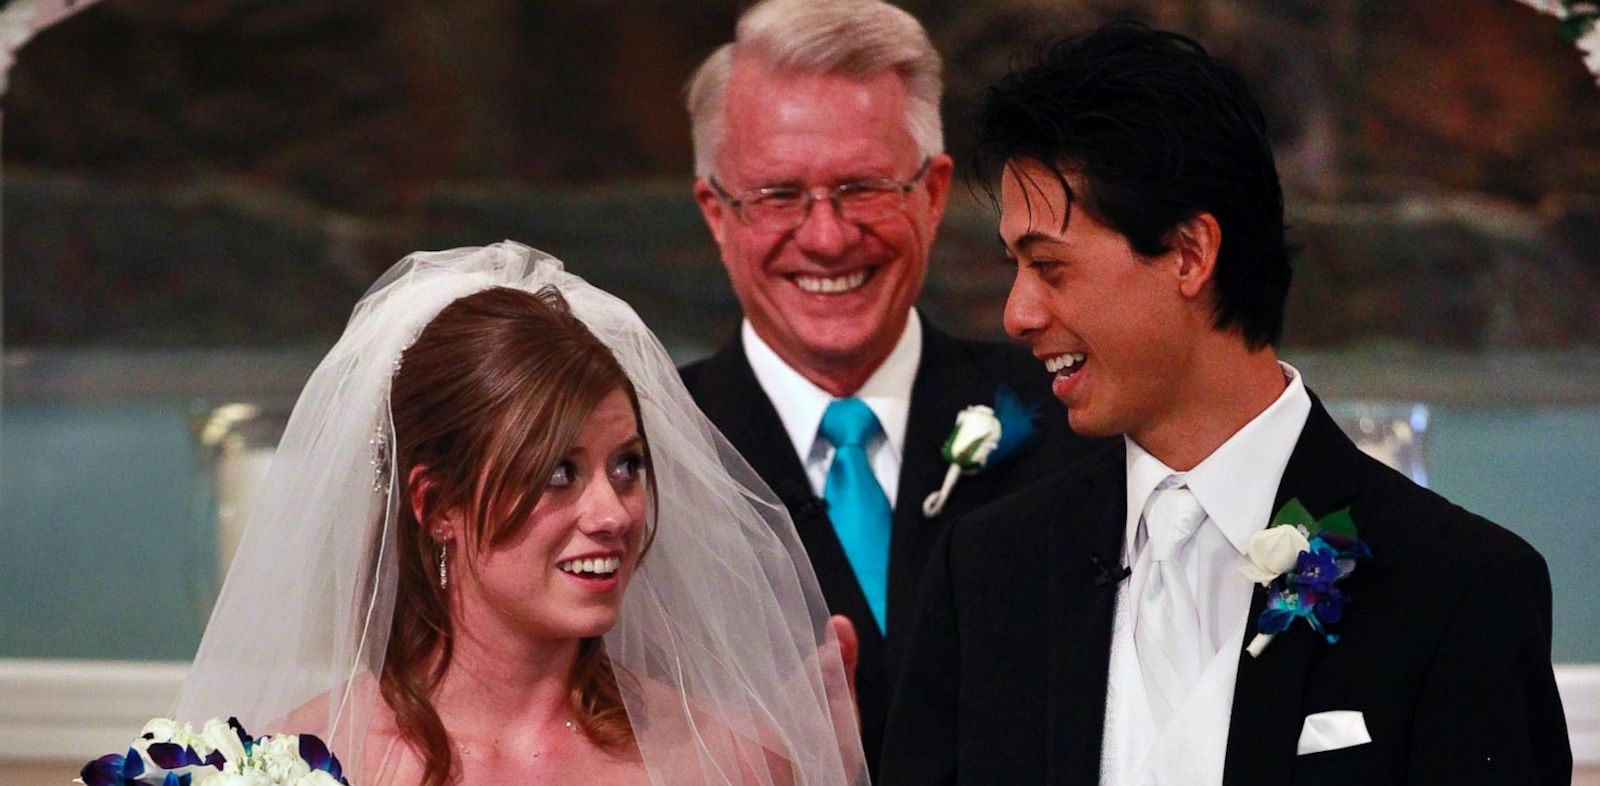 PHOTO: Aurora shooting survivors, and now newlyweds, Eugene and Kirstin Han smile at each other after exchanging vows during their wedding ceremony at Village East Baptist Church, in Aurora, Colo. Saturday July 20, 2013.